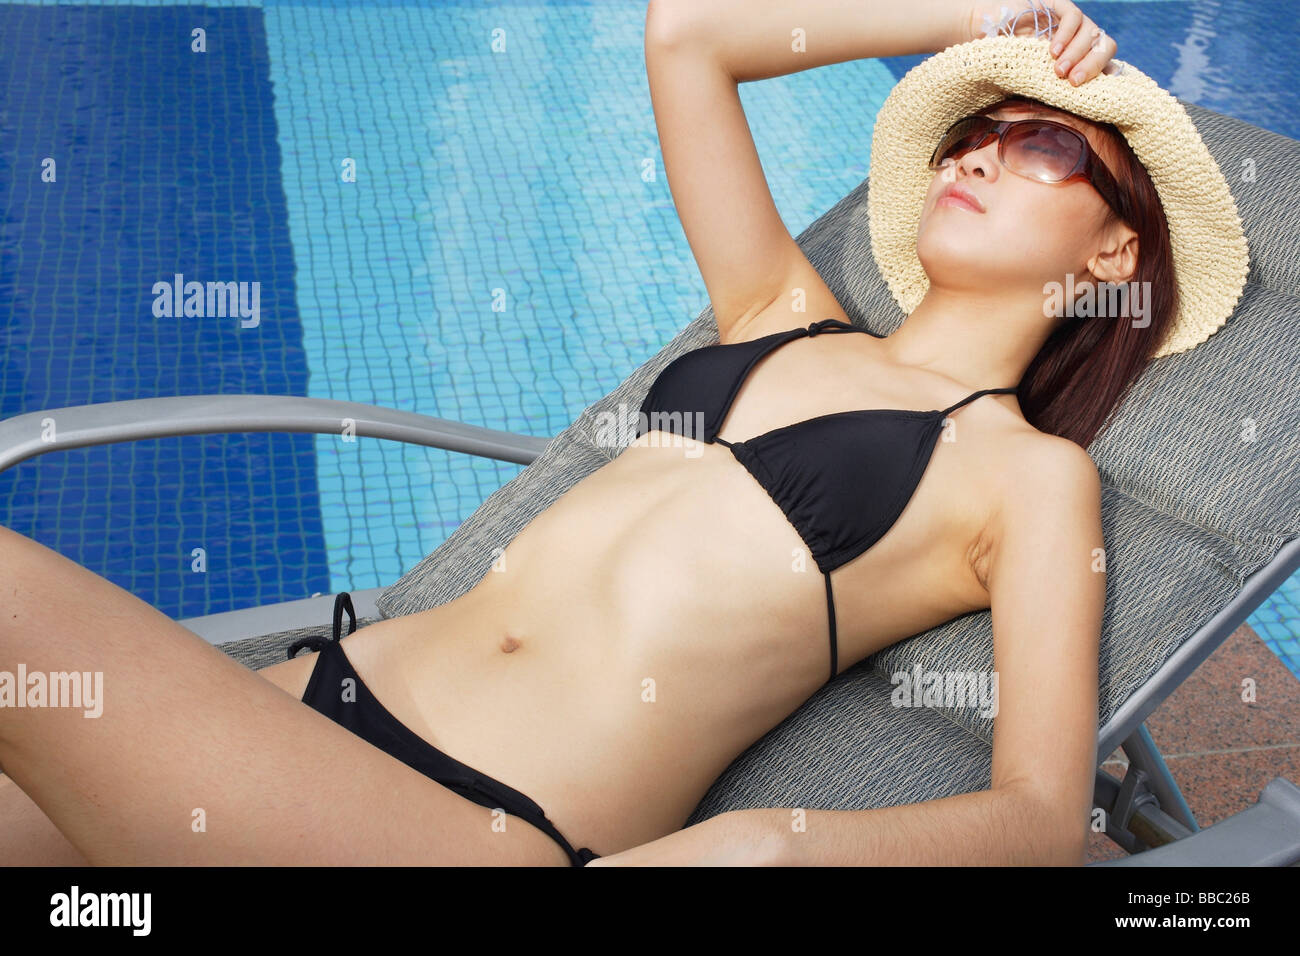 Young woman in bikini, wearing hat and sunglasses, lounging by pool - Stock Image